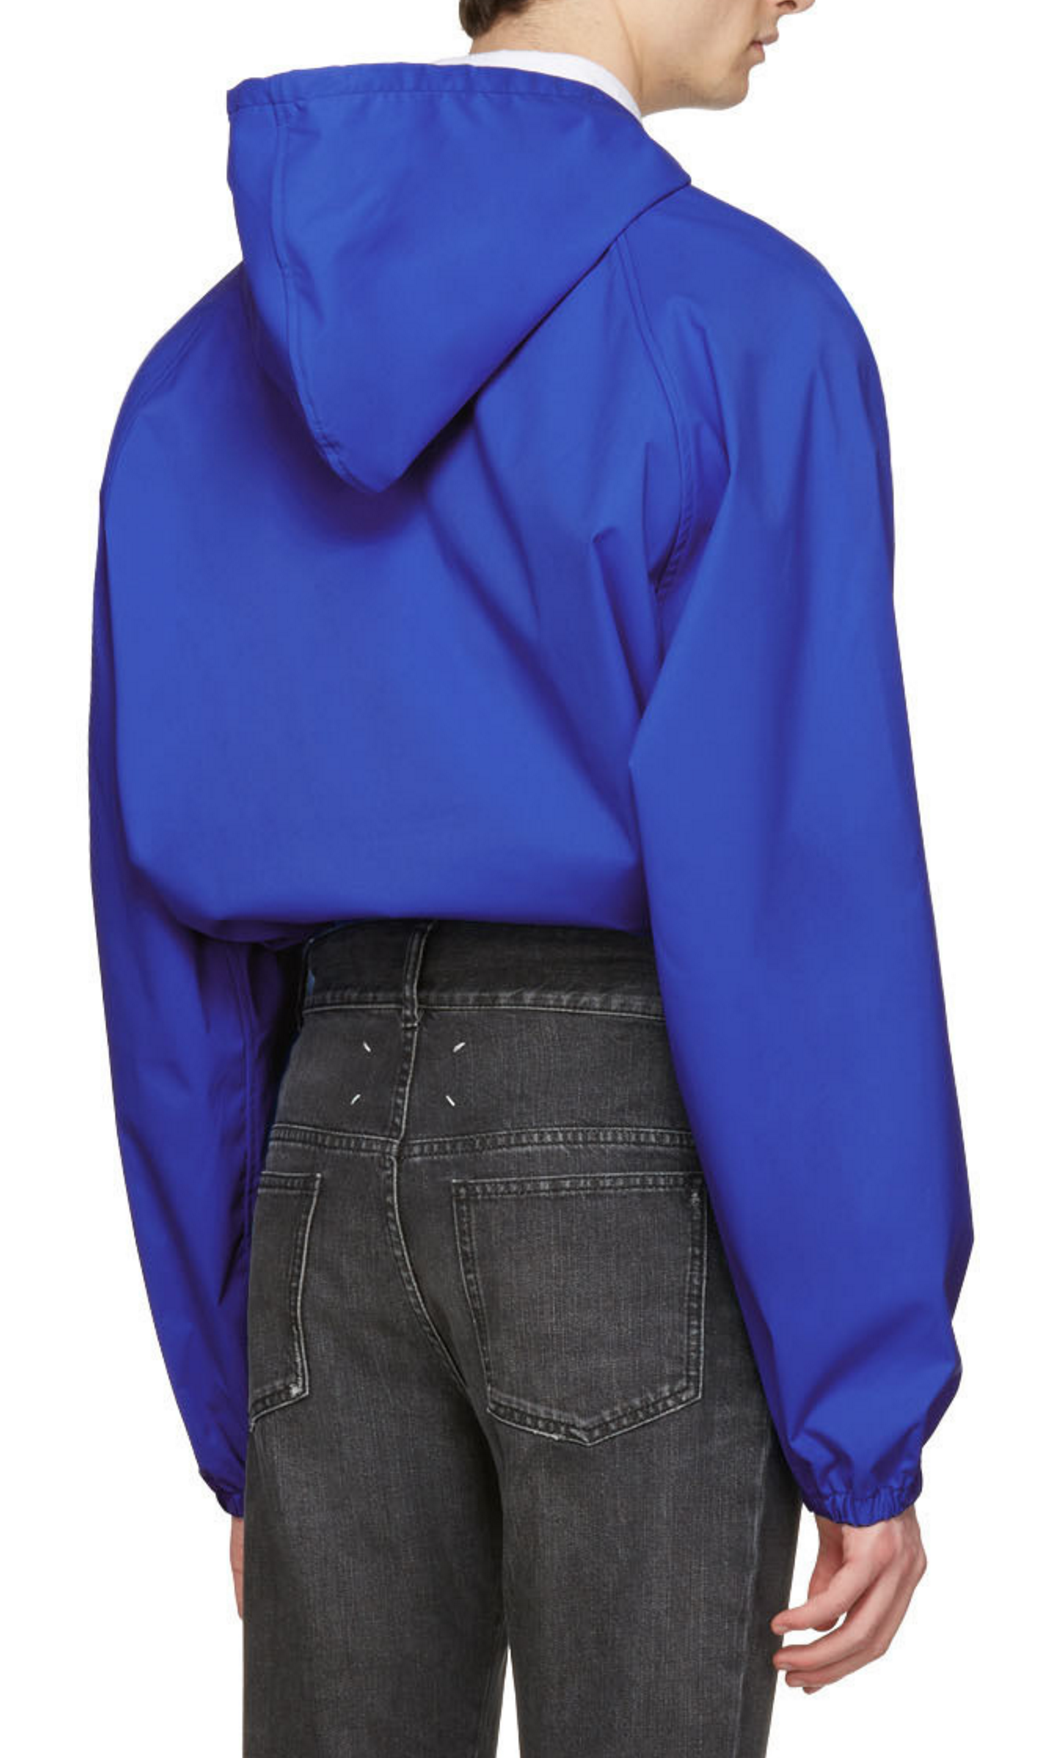 Martine Rose Blue Windcheater Hooded Jacket from SSENSE (men, style, fashion, clothing, shopping, recommendations, stylish, menswear, male, streetstyle, inspo, outfit, fall, winter, spring, summer, personal)